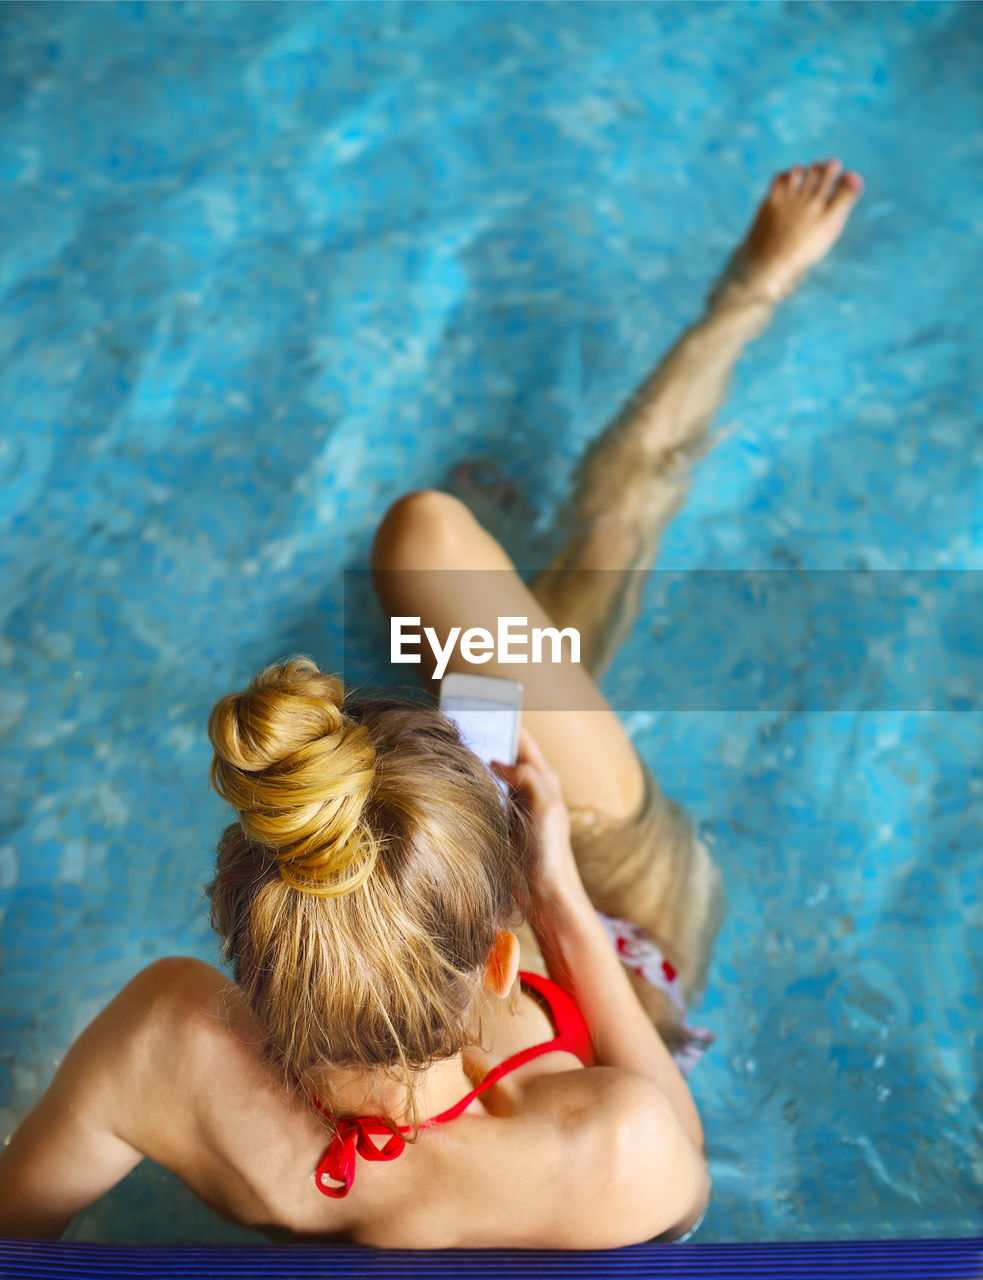 HIGH ANGLE VIEW OF WOMAN HOLDING SWIMMING POOL